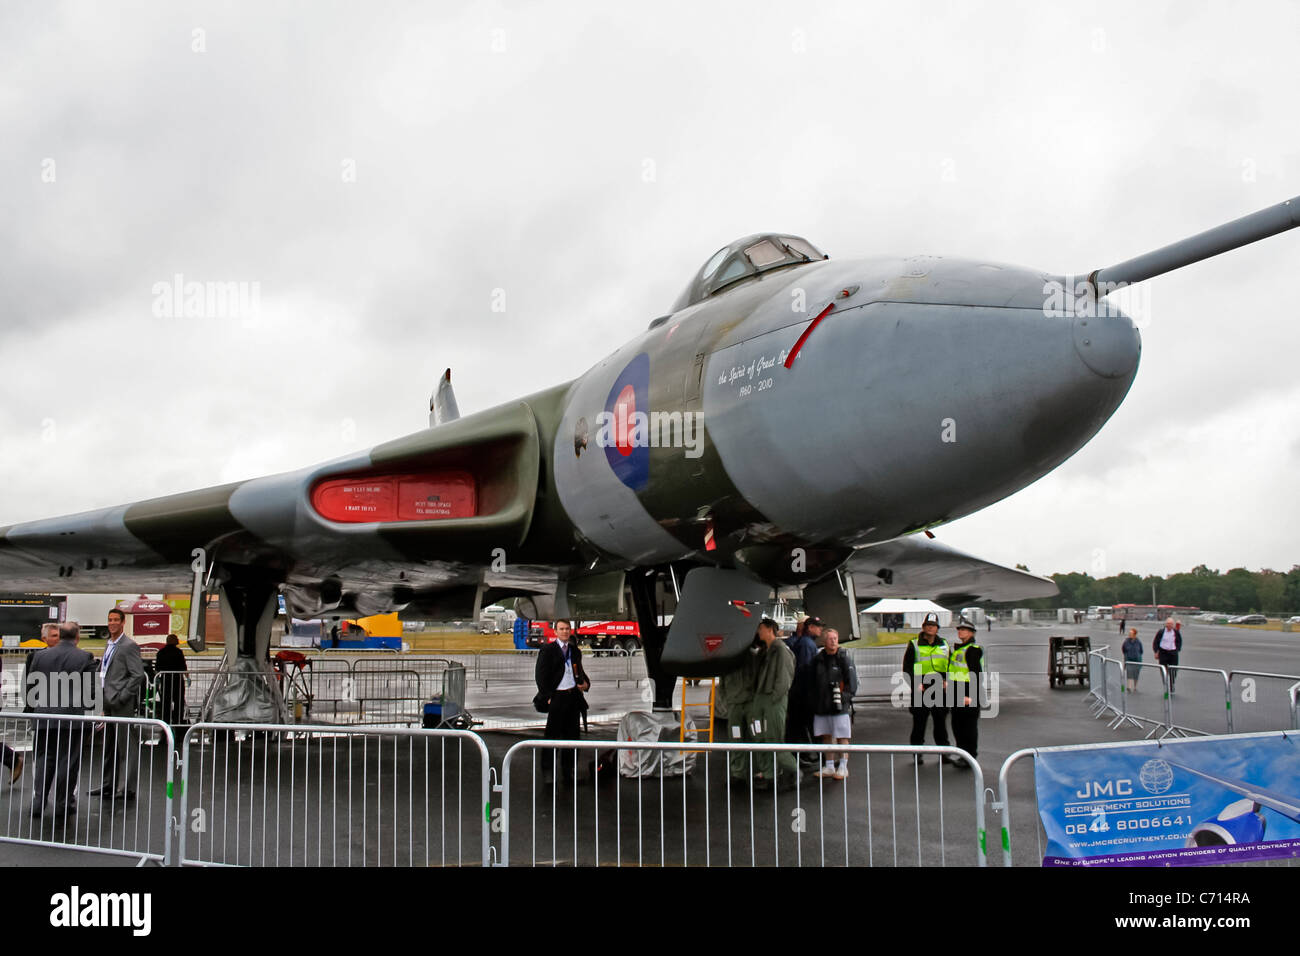 Display by the Avro Vulcan XH558 at the Farnborough International Airshow - Stock Image